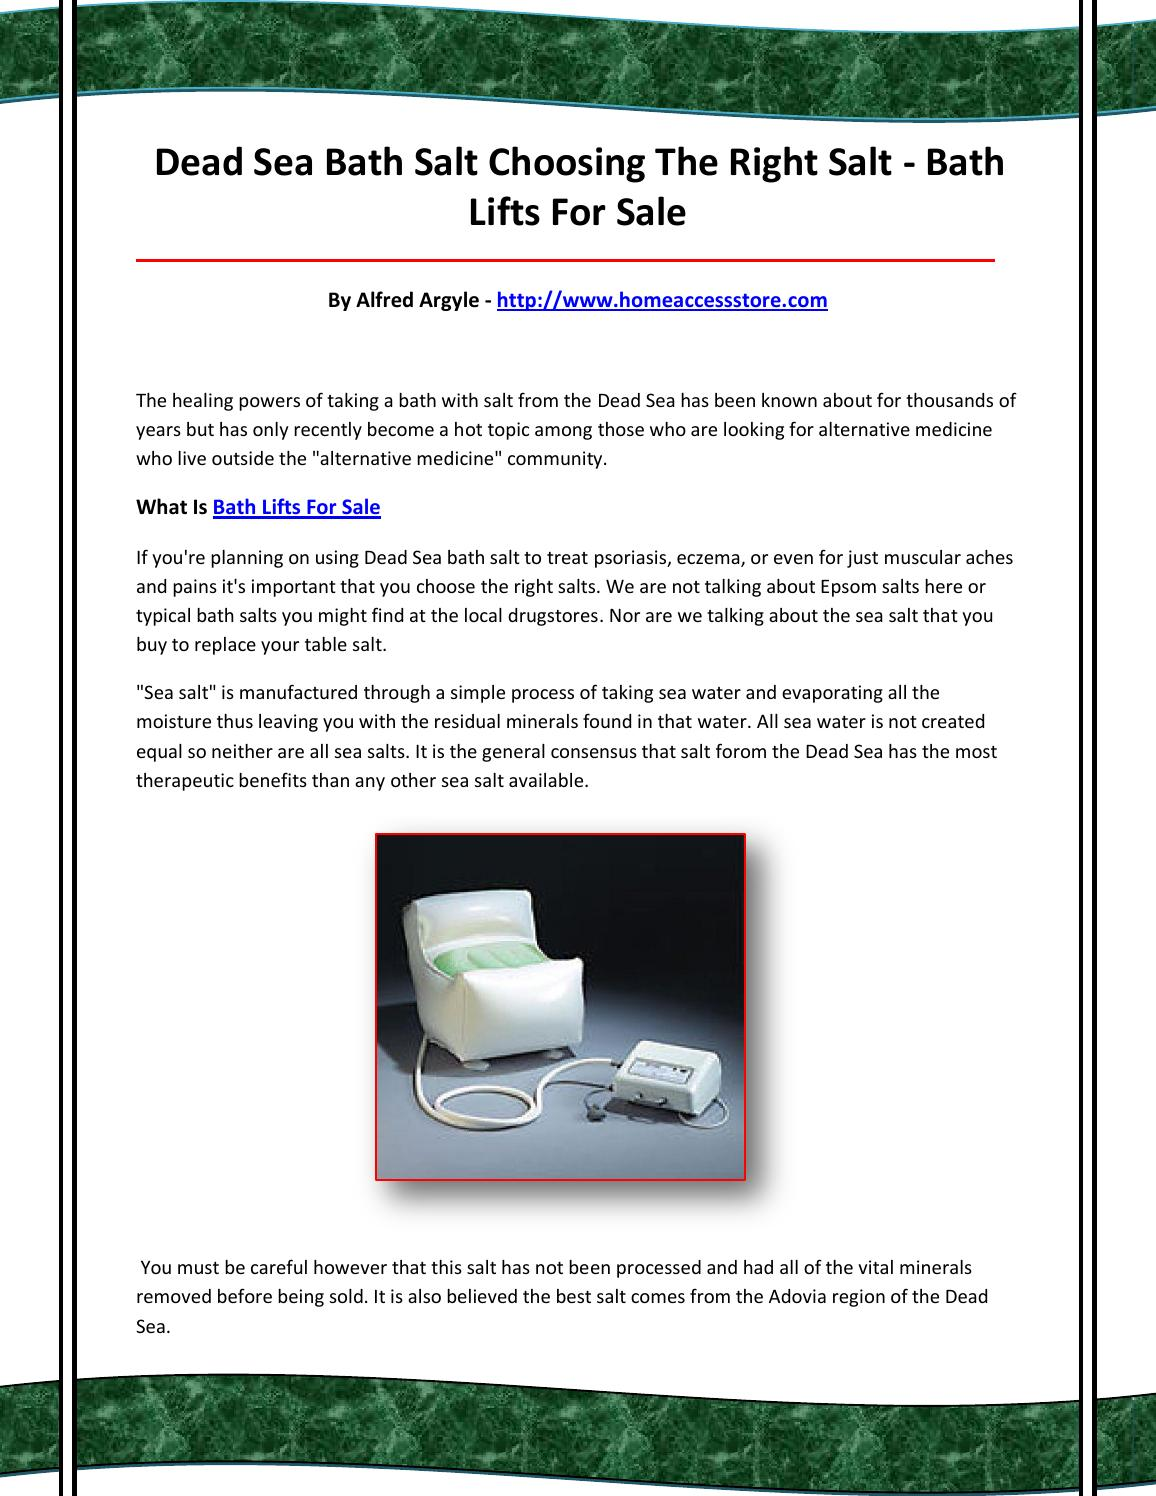 Bath lifts for sale by bathliftsforsale96 - issuu